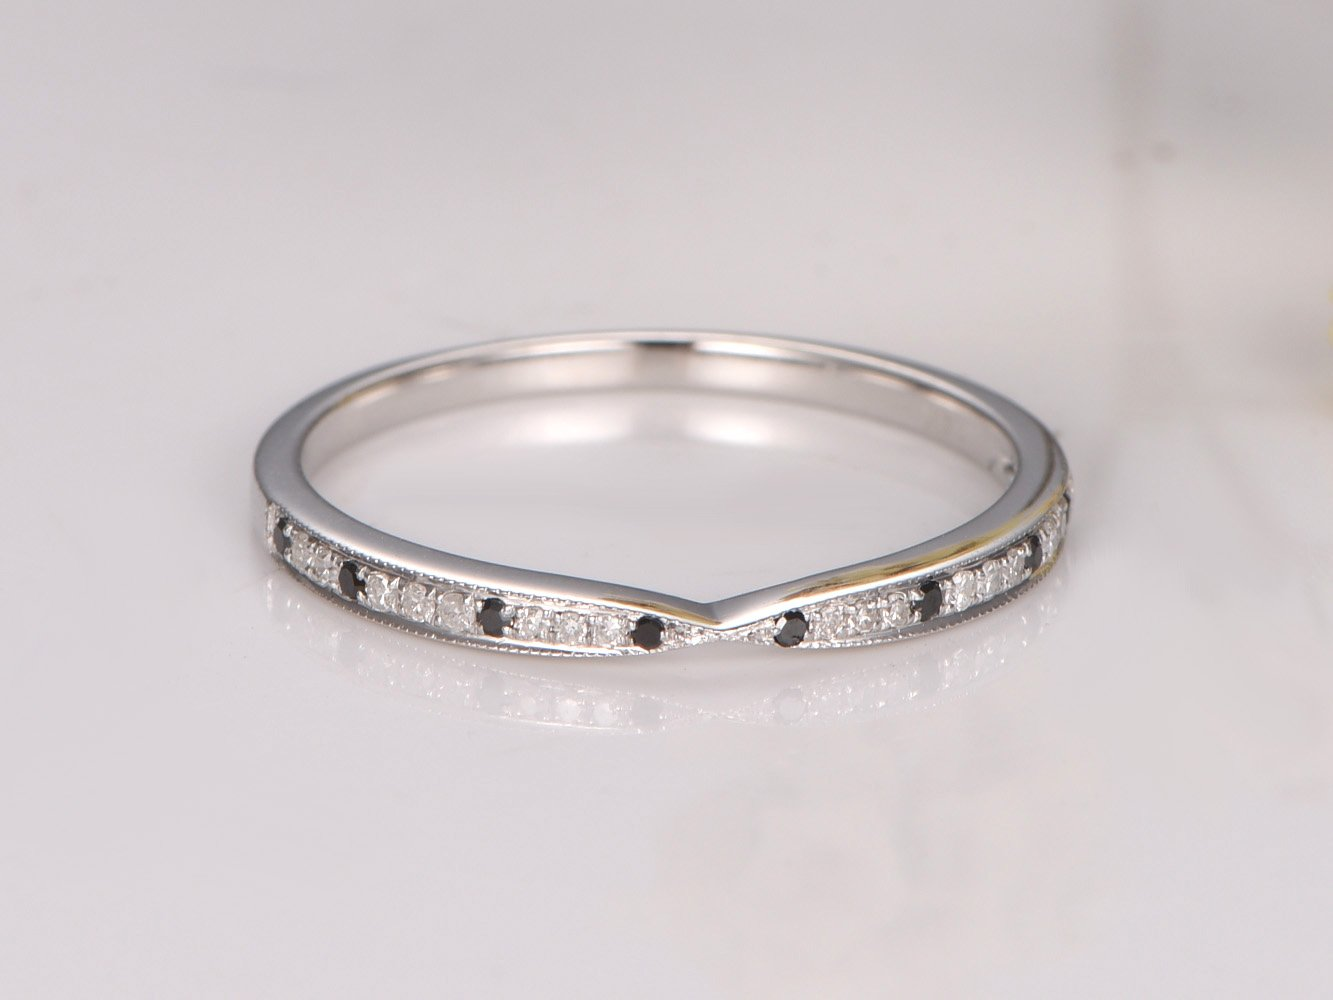 1/2 Eternity Clear and Black Diamond Wedding Band,Solid 14k White Gold Natural SI-H diamond Engagement Ring, Bridal Promise Ring Stack Matching Band